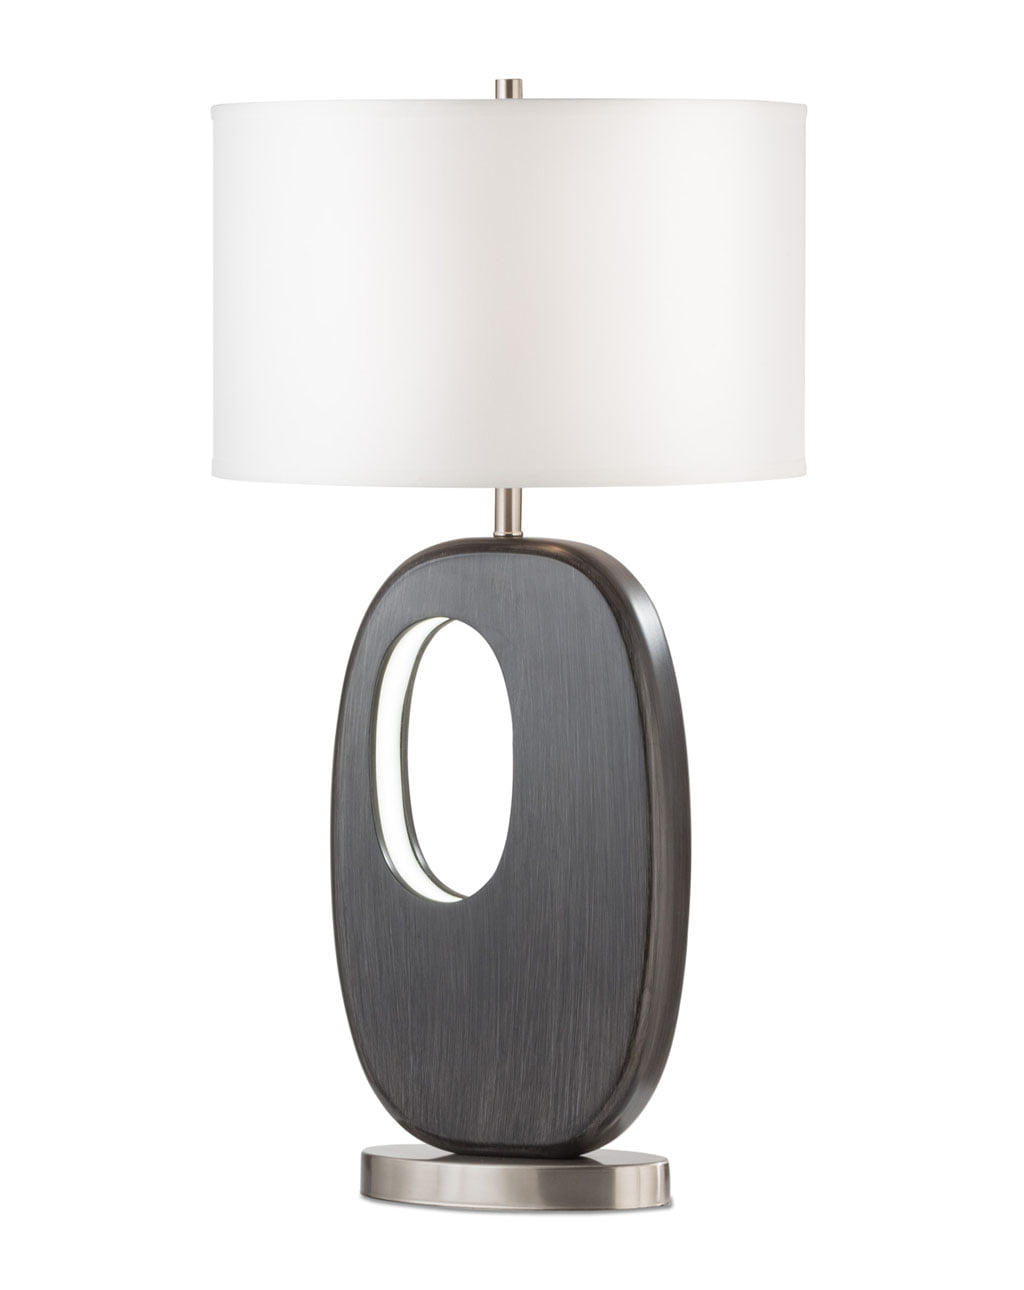 Offset Standing Table Lamp, Charcoal Gray